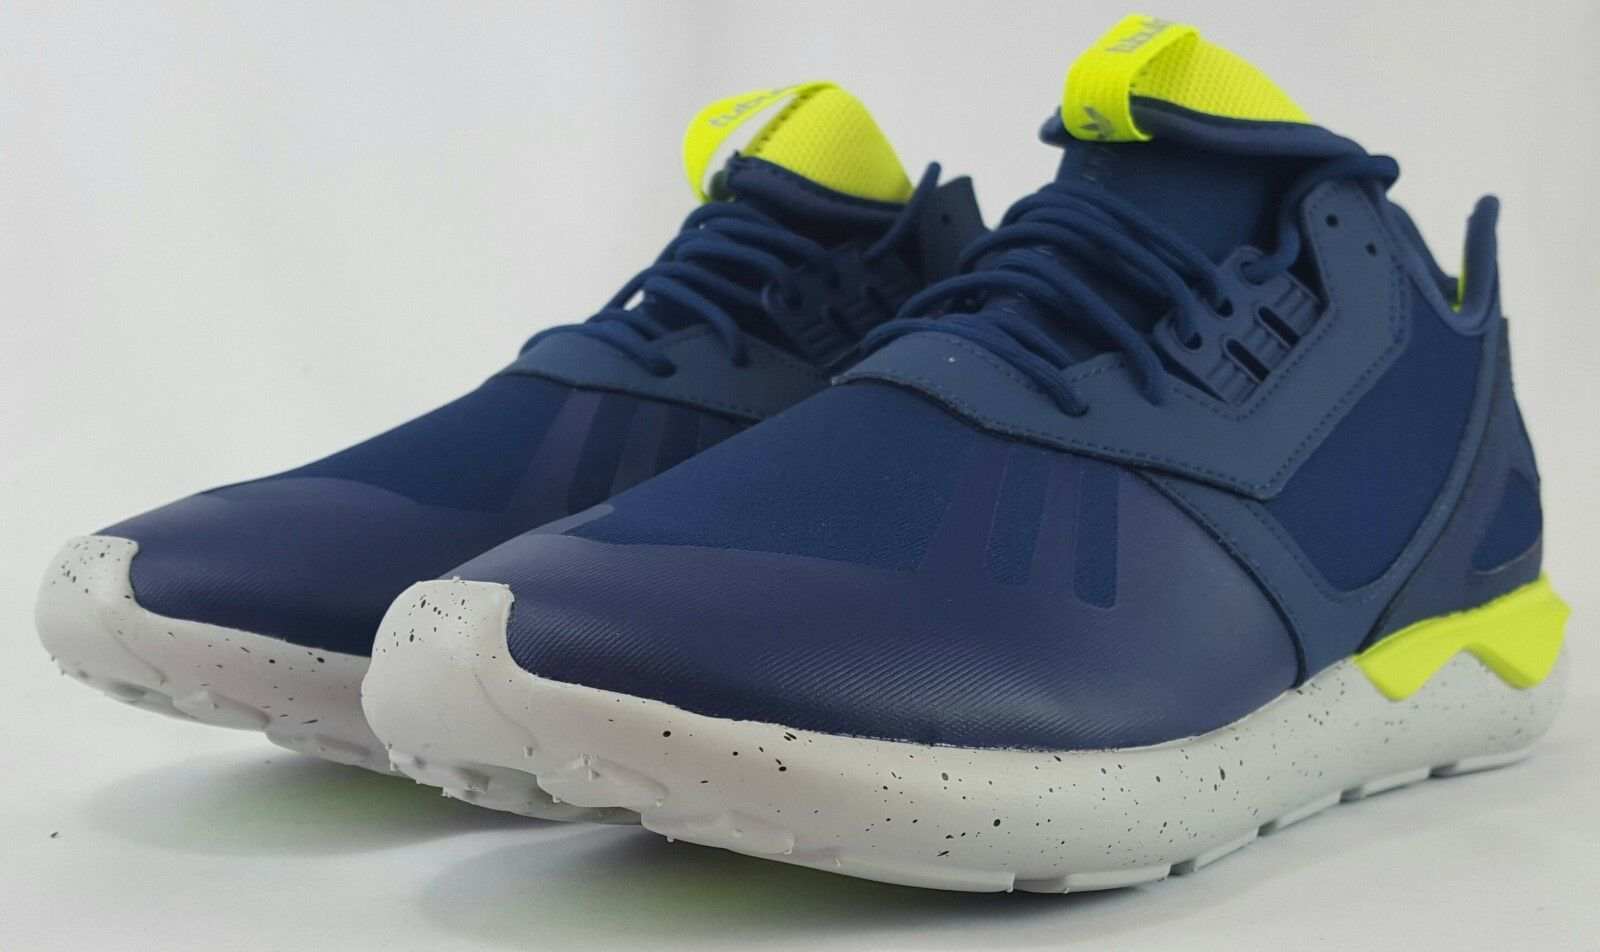 BRAND NEW EXCLUSIVE ADIDAS TUBULAR RUNNER SIZE 9-12  60 AQ8389 FREE SHIPPING